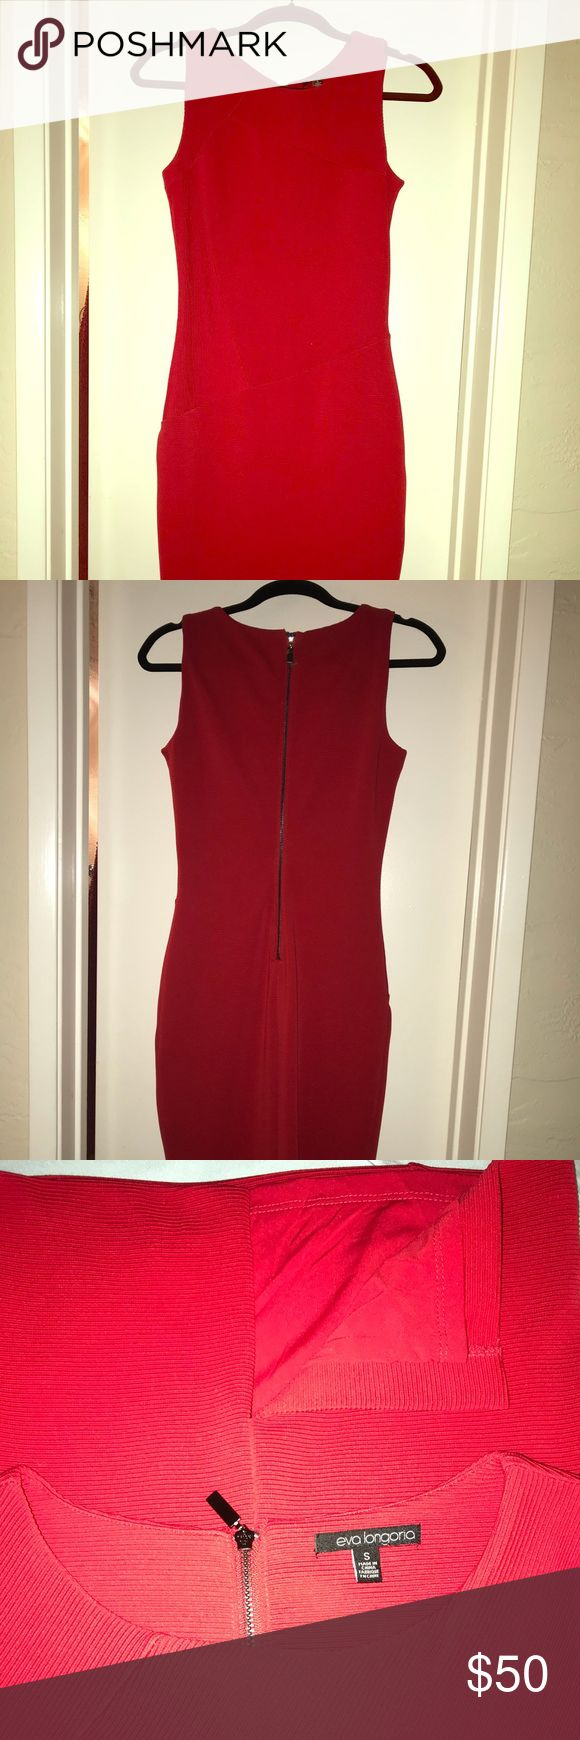 "EUC Eva Longoria Body Hugging Lined Dress Perfect for a Valentine's Day date night. This form fitting dress is a head turner. It measures about 16"" chest, 13"" waist, 16"" hips. Worn only once and no rips or stains. Eva Longoria Dresses Midi"